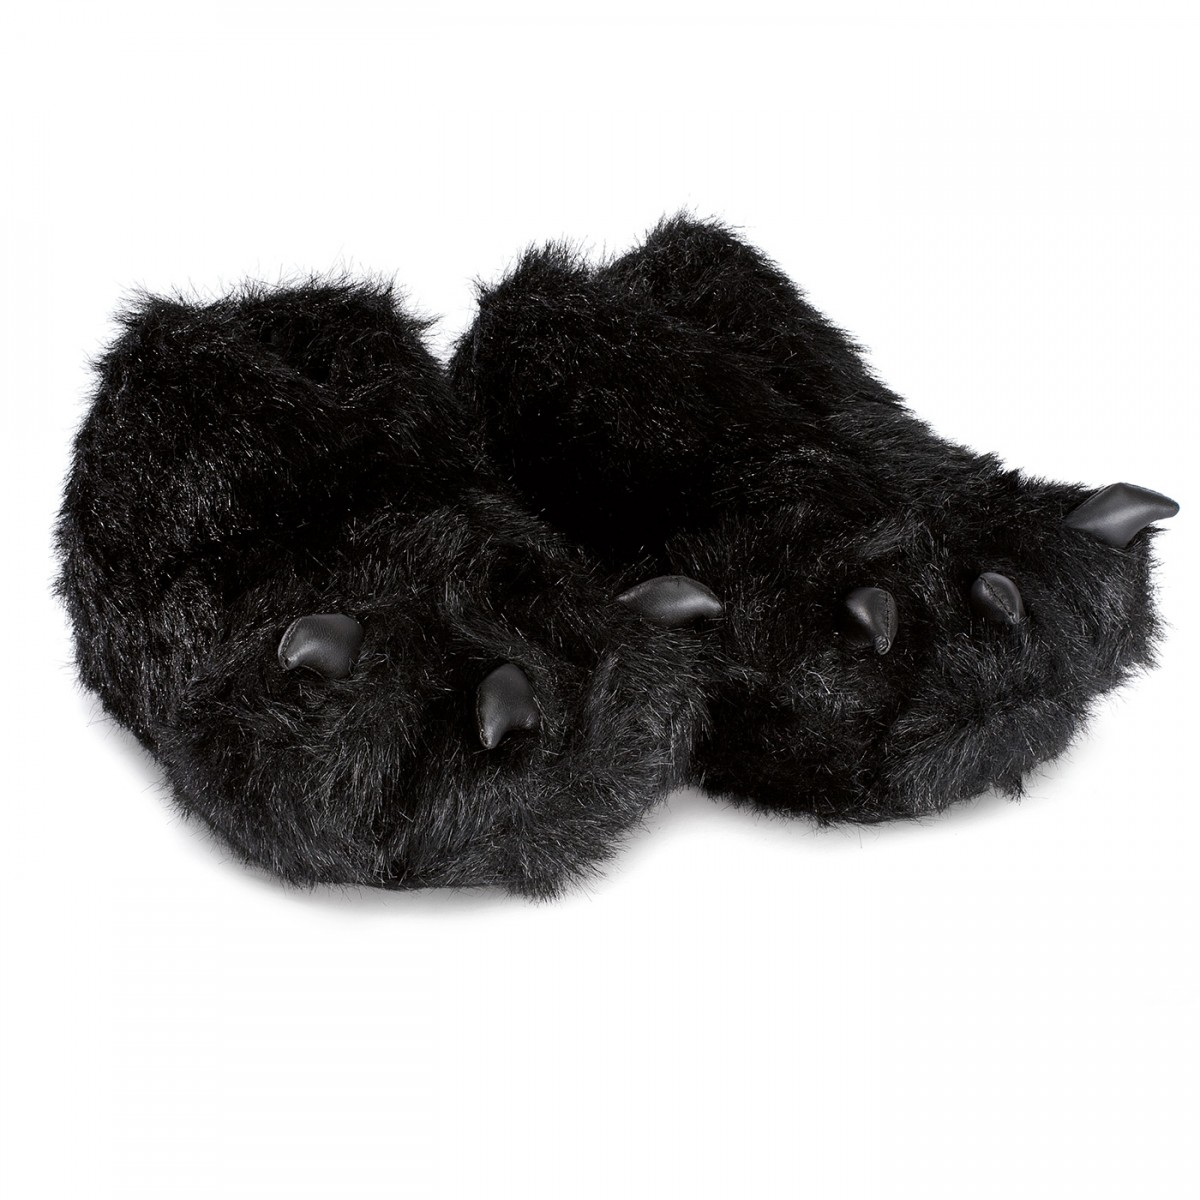 Paws Slippers with claws size 39, 40, 41. Buy now at ...